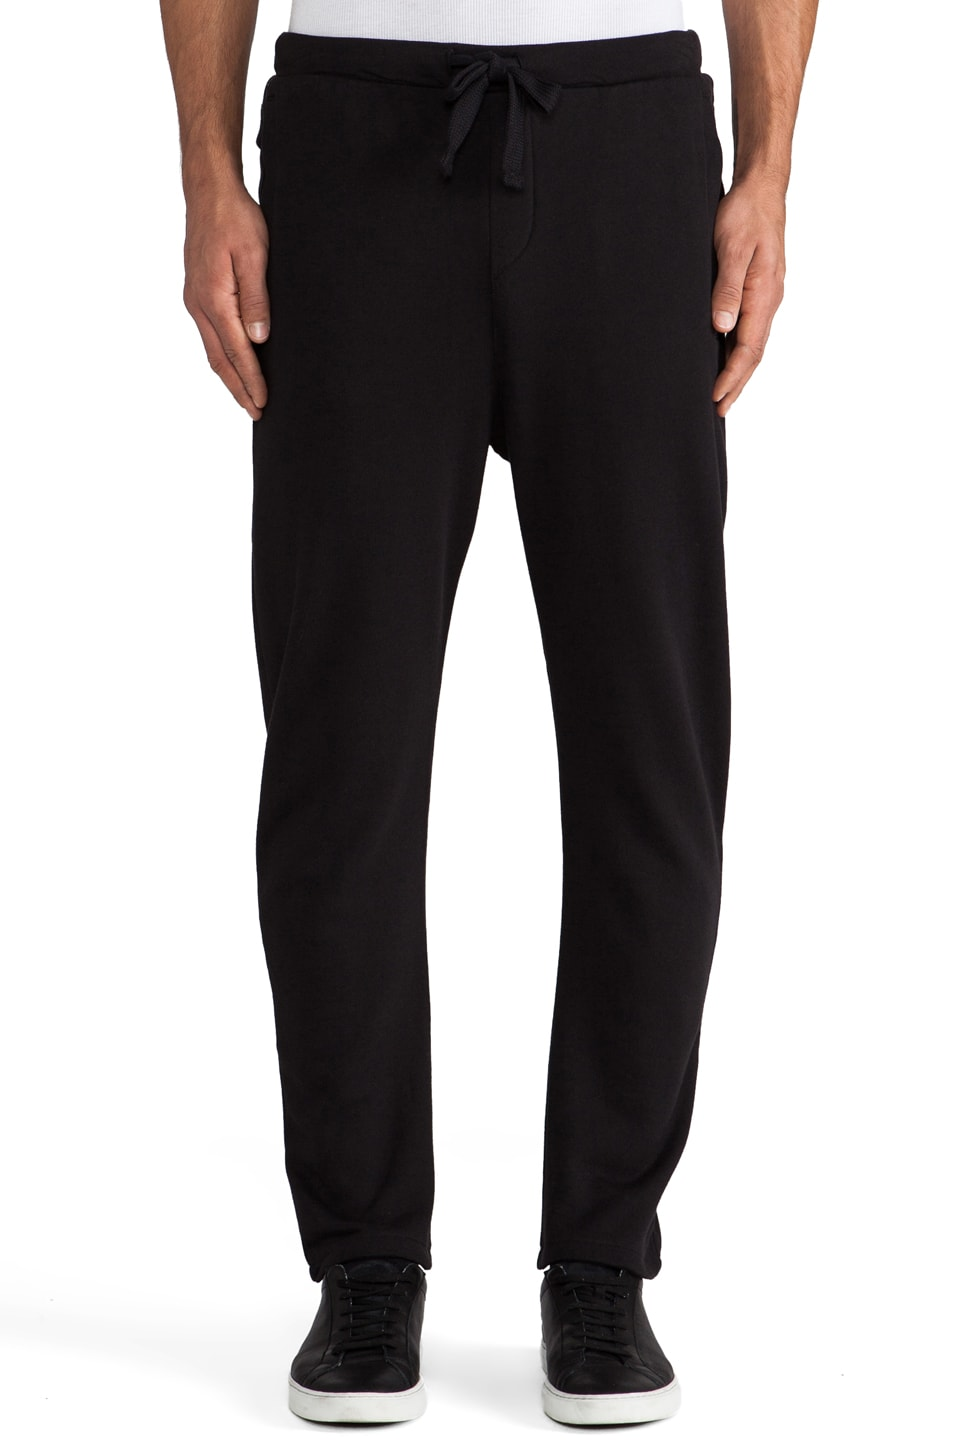 adidas SLVR Wide FT Pant in Black